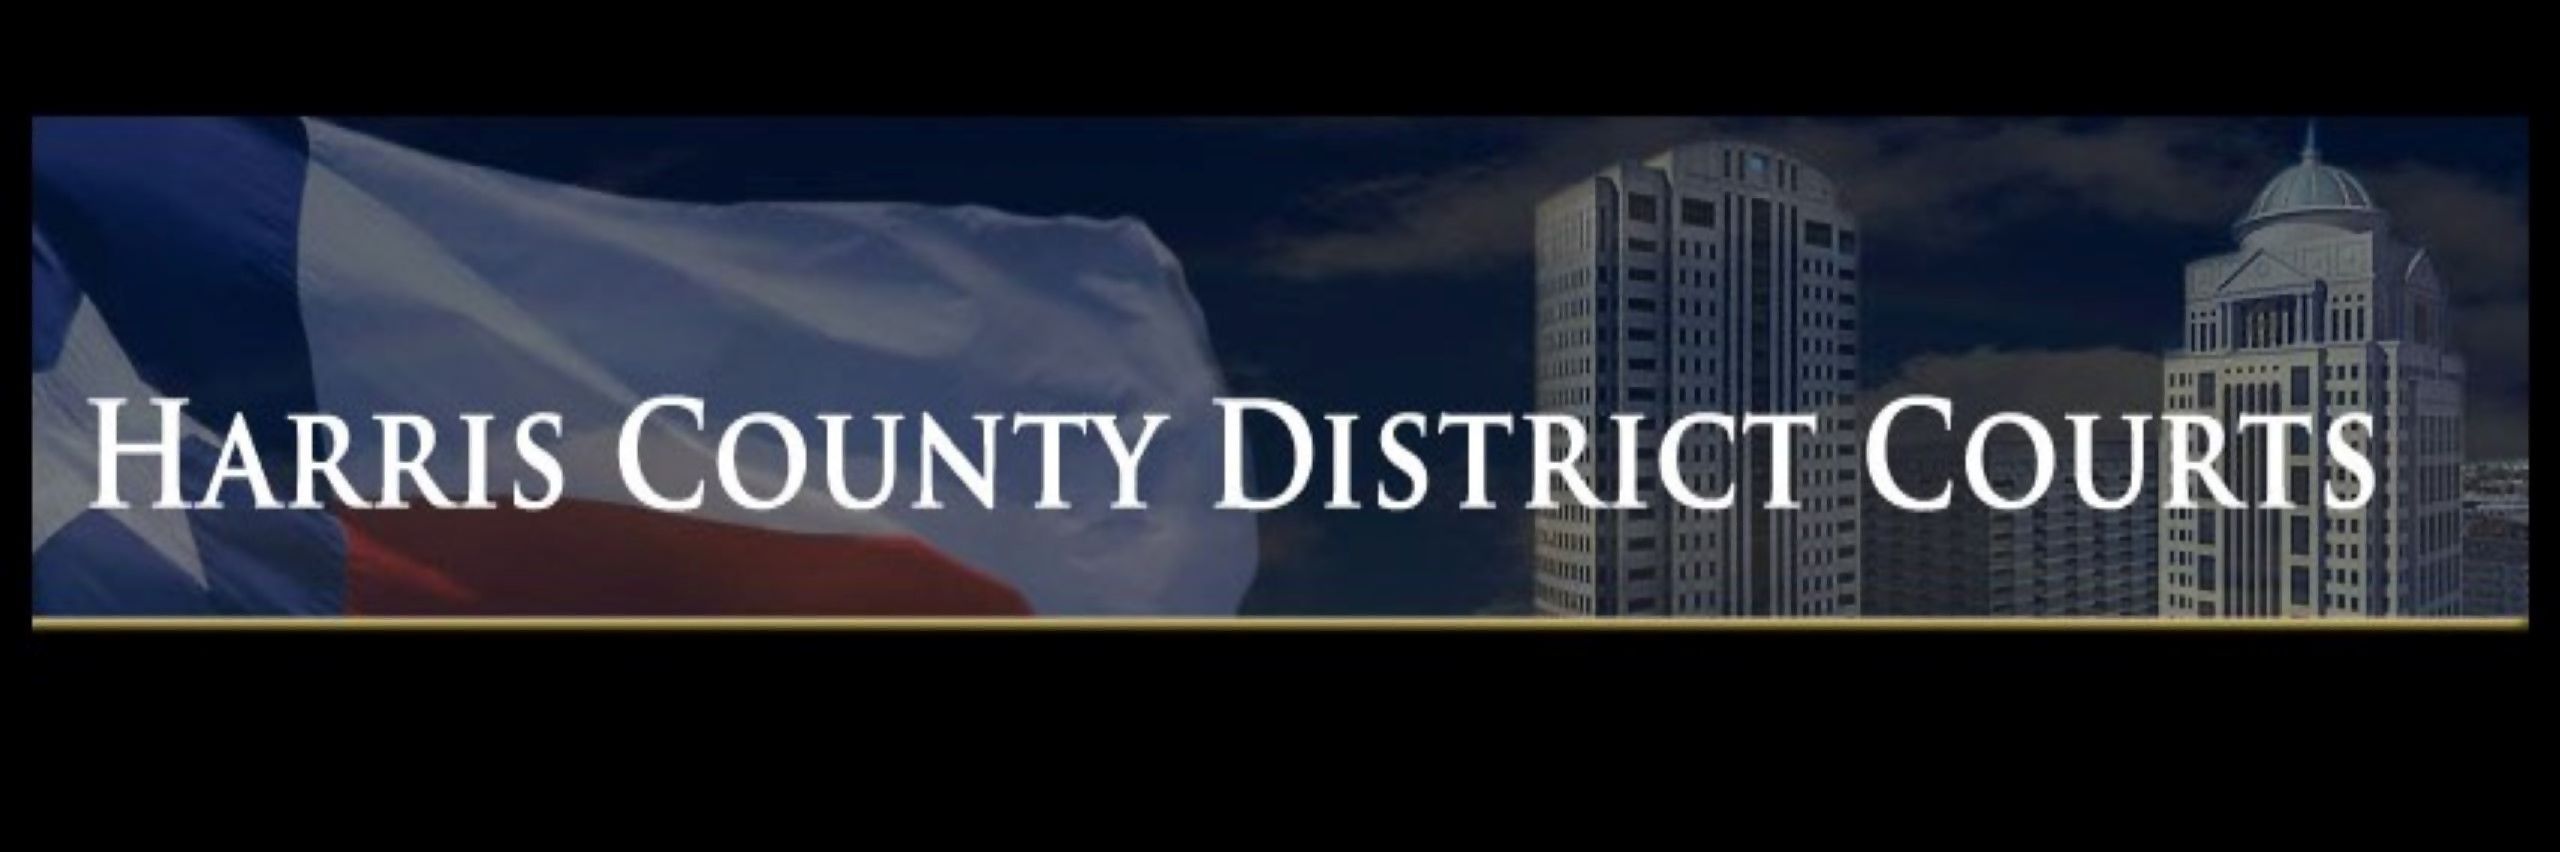 55th District Court - Live Stream